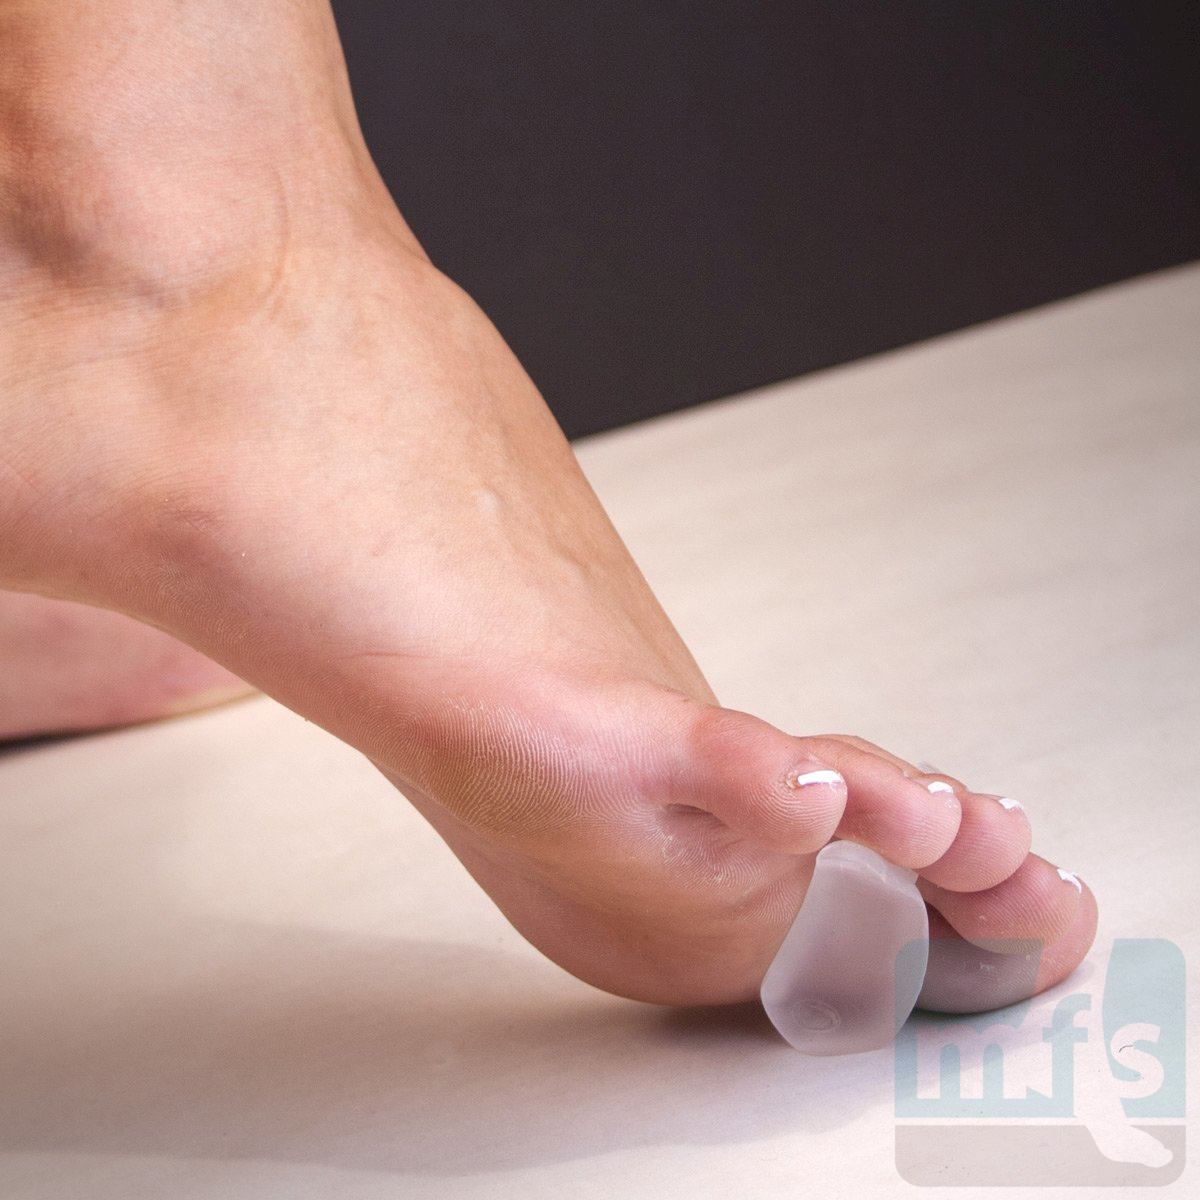 Physical Therapy After Hammertoe Surgery | riveramztsccsldg